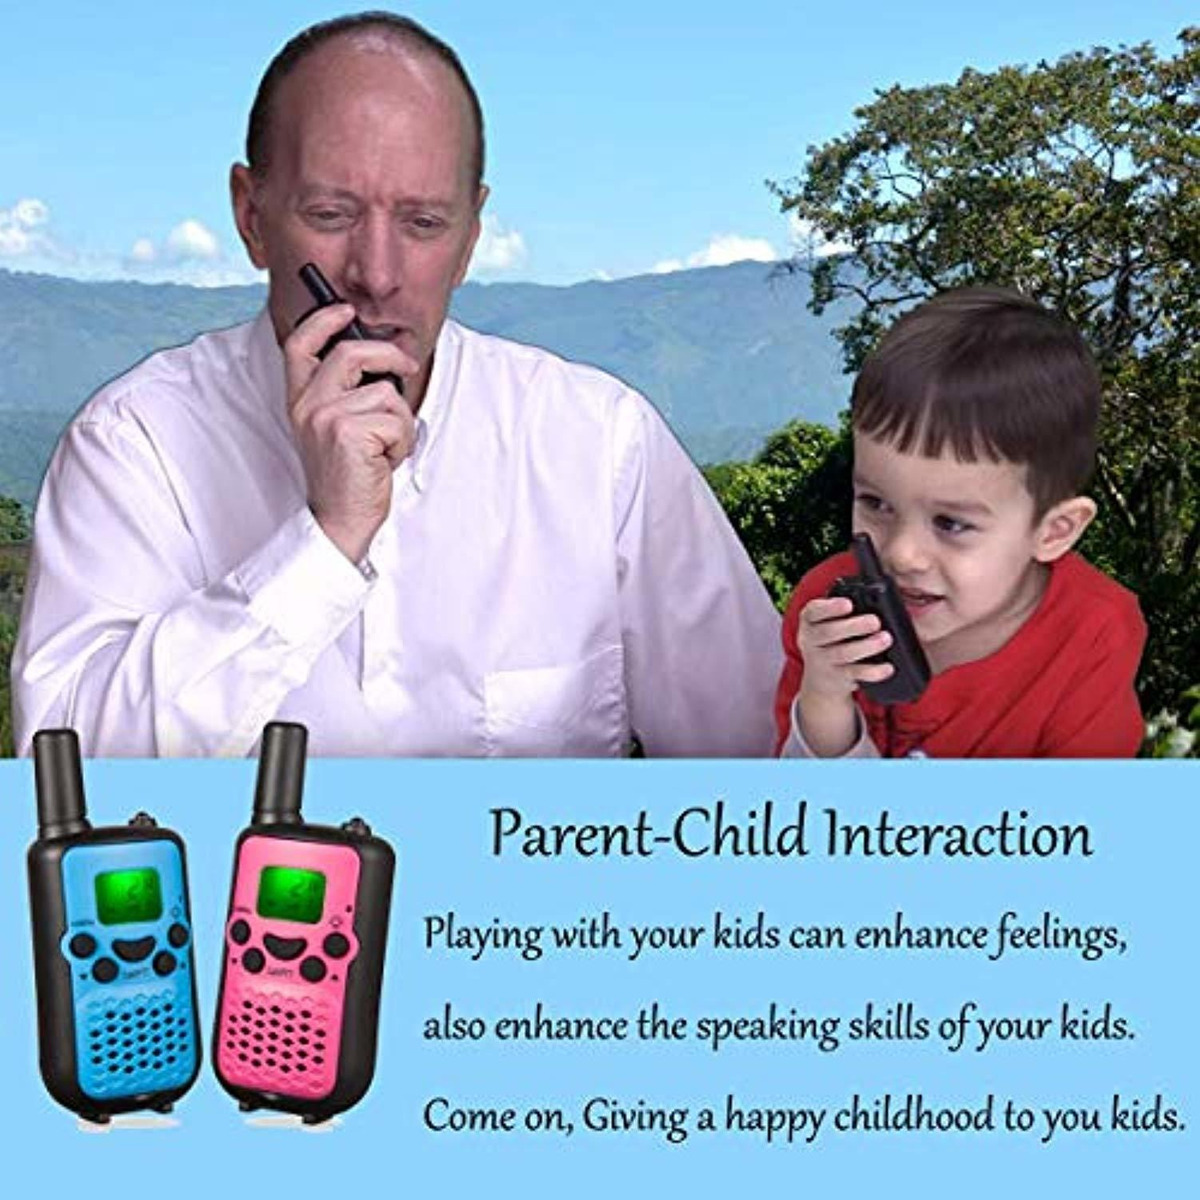 Camouflage Rechargeable Walkie Talkies for Kids Gifts Toys 4-12 Year Old Boys Girls Camkiy 17062101